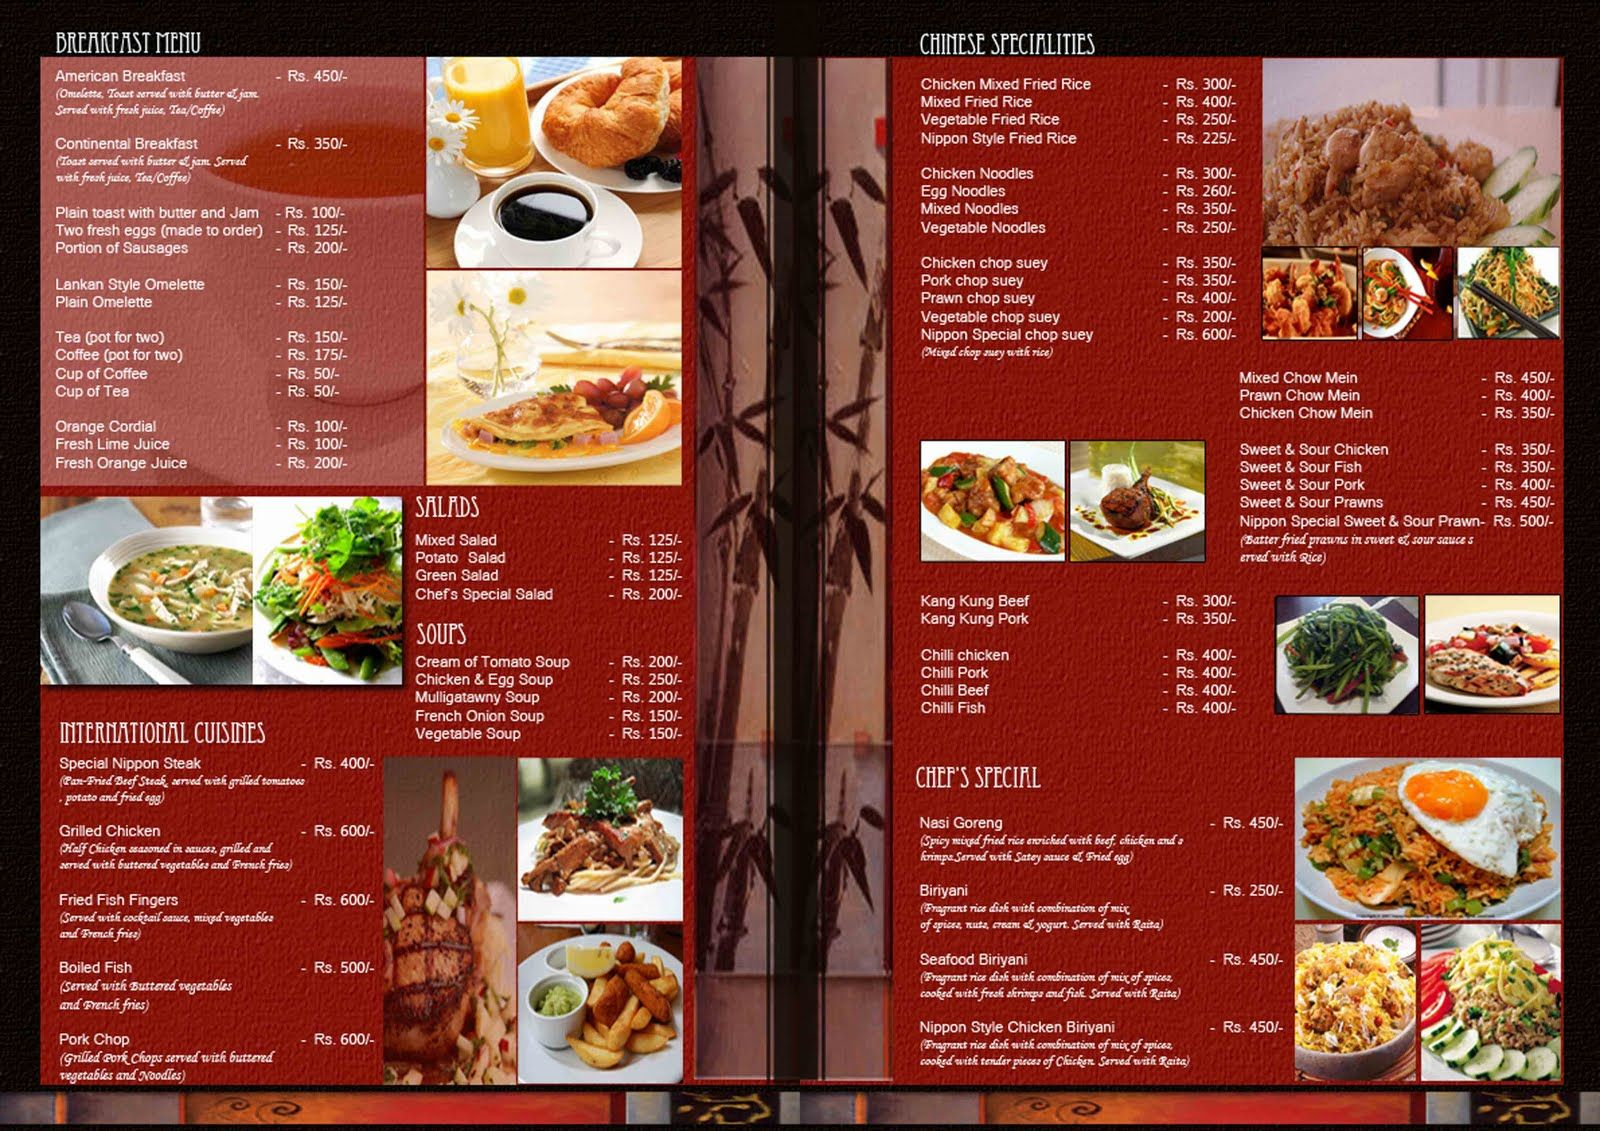 Menu Design Ideas find this pin and more on restaurant menu design Oriental Restaurant Menu Design Ideas Restaurant Menu Design That Can Give You Inspiration Home Design